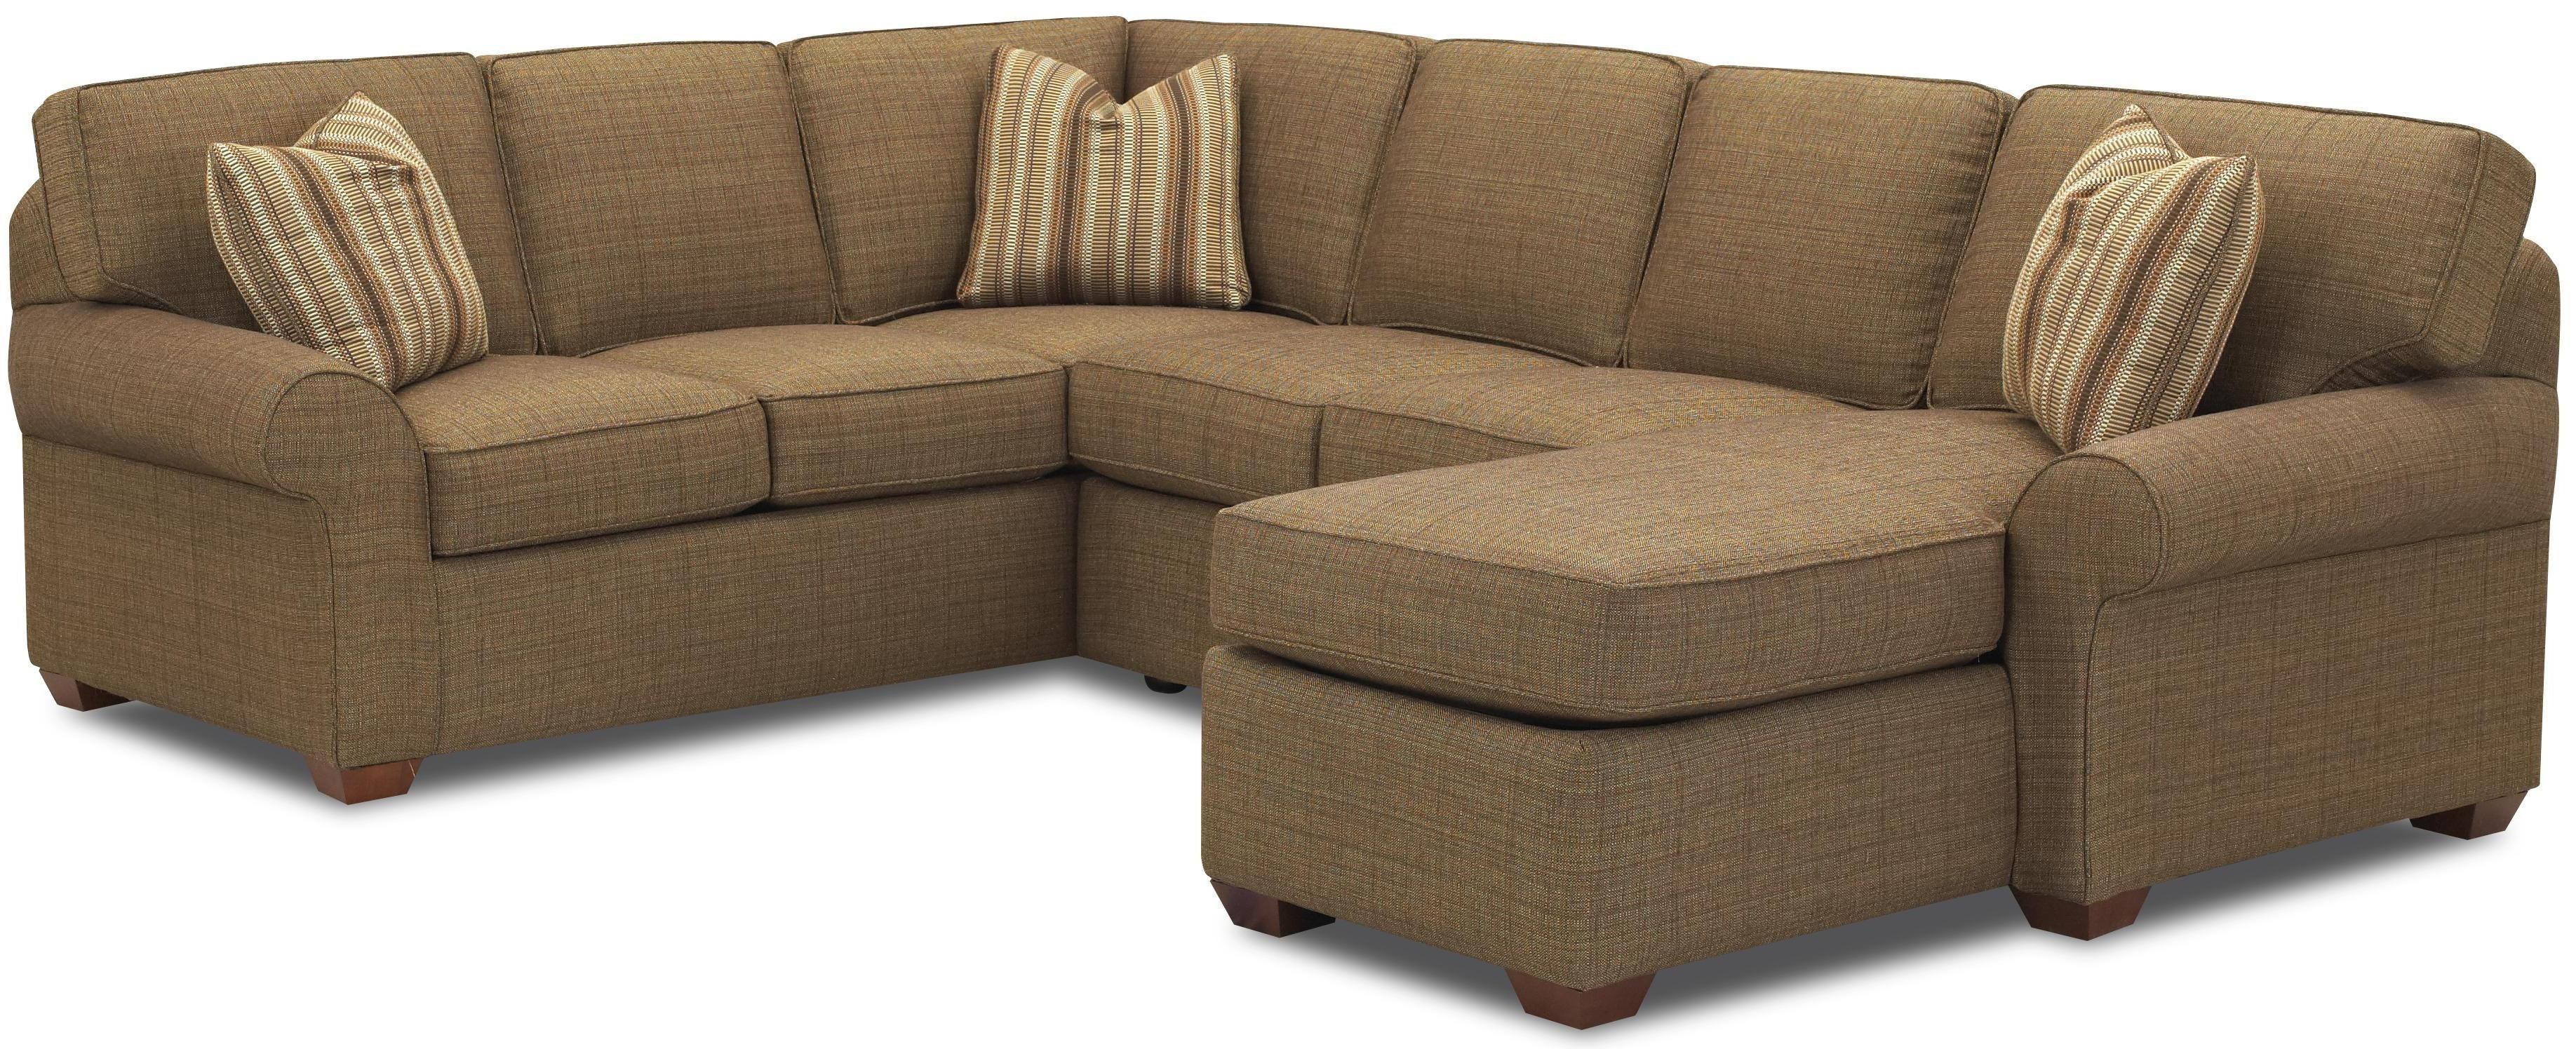 Sectional Sofa Group With Right Chaise Loungeklaussner | Wolf Pertaining To Sofas With Chaise Longue (View 2 of 20)